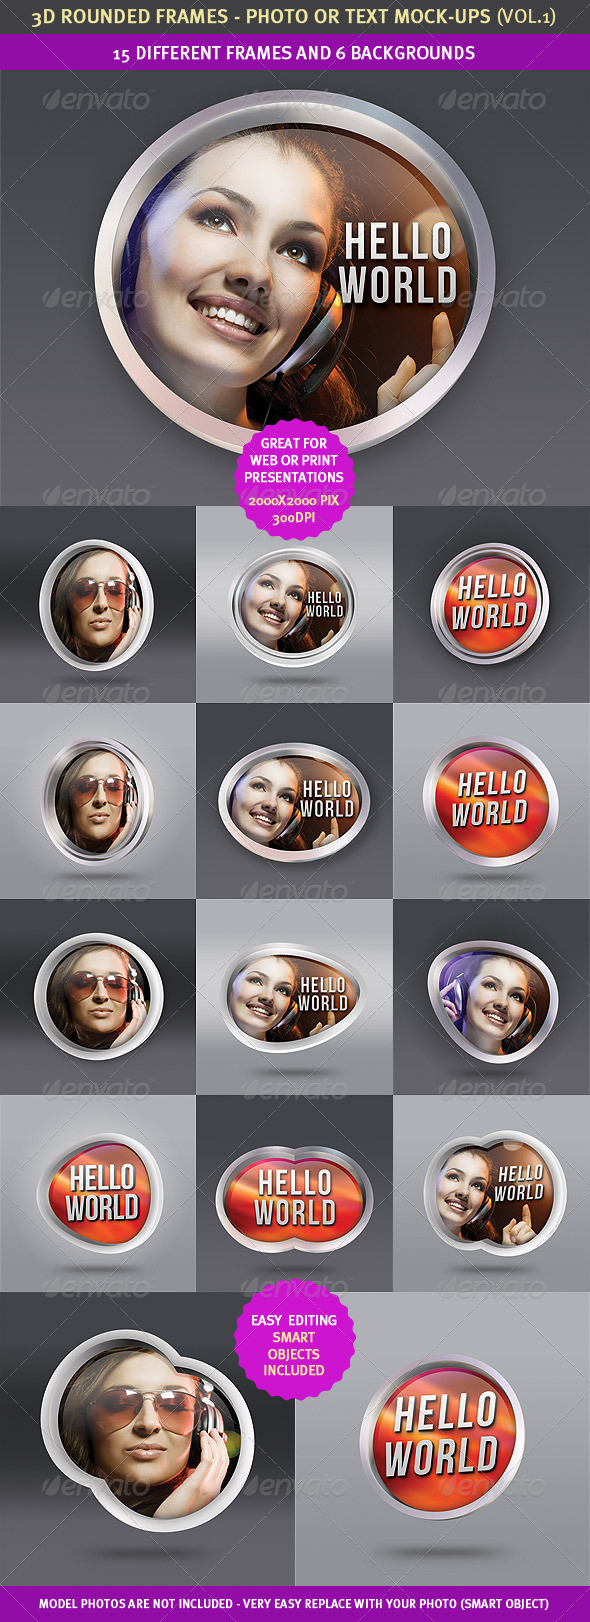 GraphicRiver 15 Rounded 3D Frame Mock-Ups 2311068